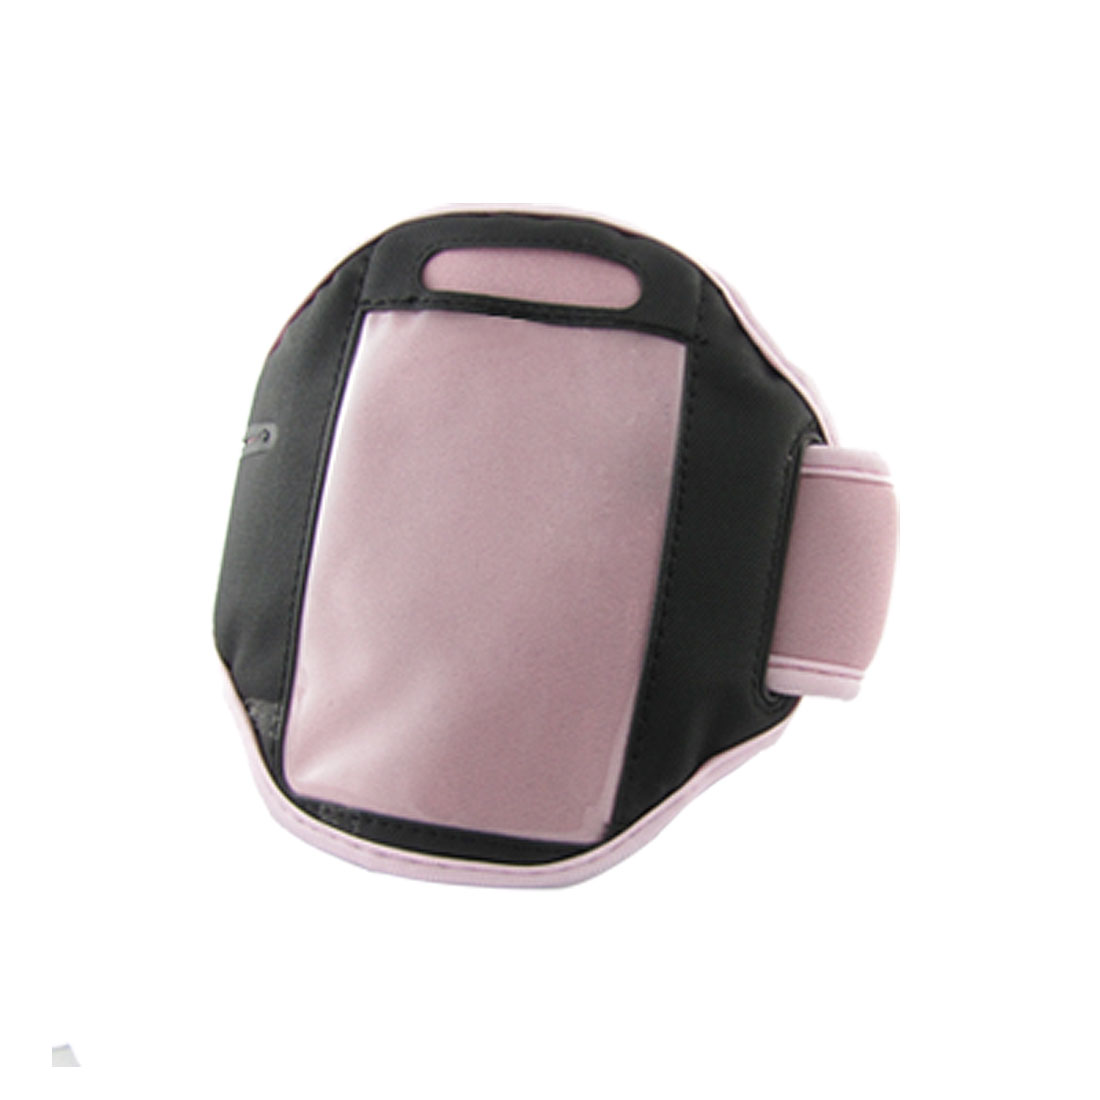 Hook and Loop Fastener Closure Pink Armband w Clear Crystal Shell for iPhone 4